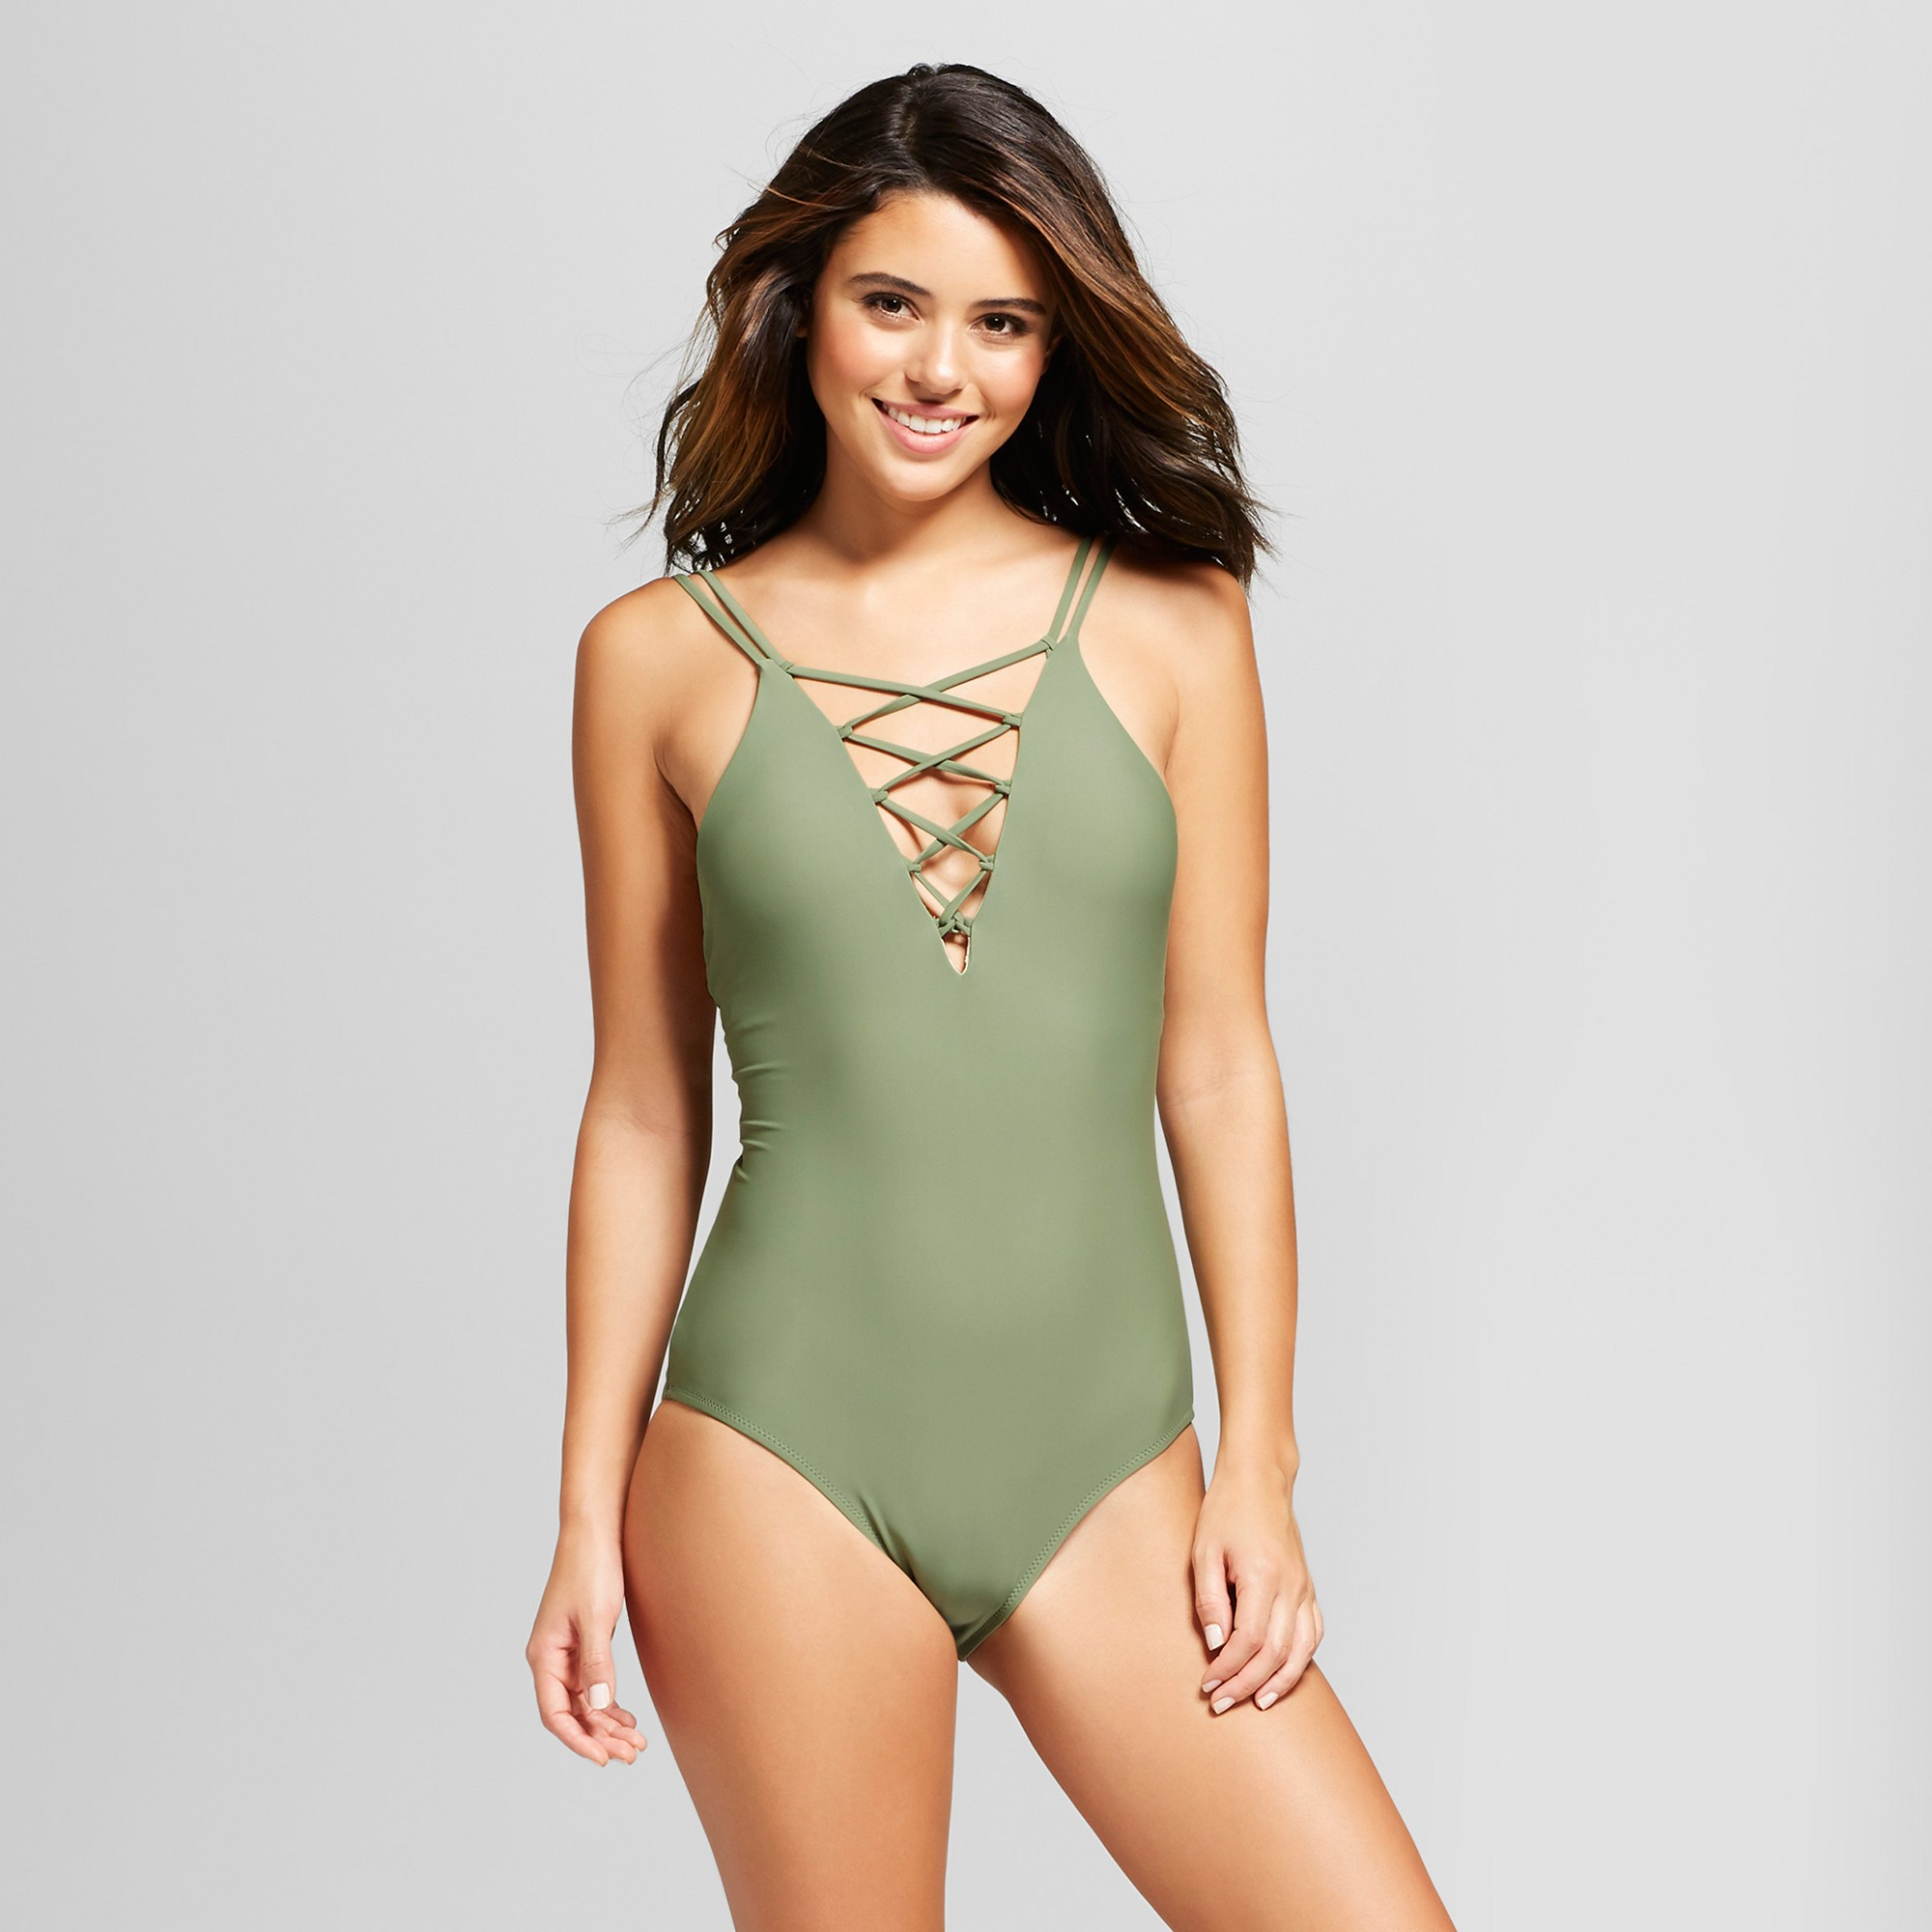 7d7966b1f4 Vanilla Beach Women's Strappy Cheeky Lace Up One Piece Swimsuit - Olive  Heather S